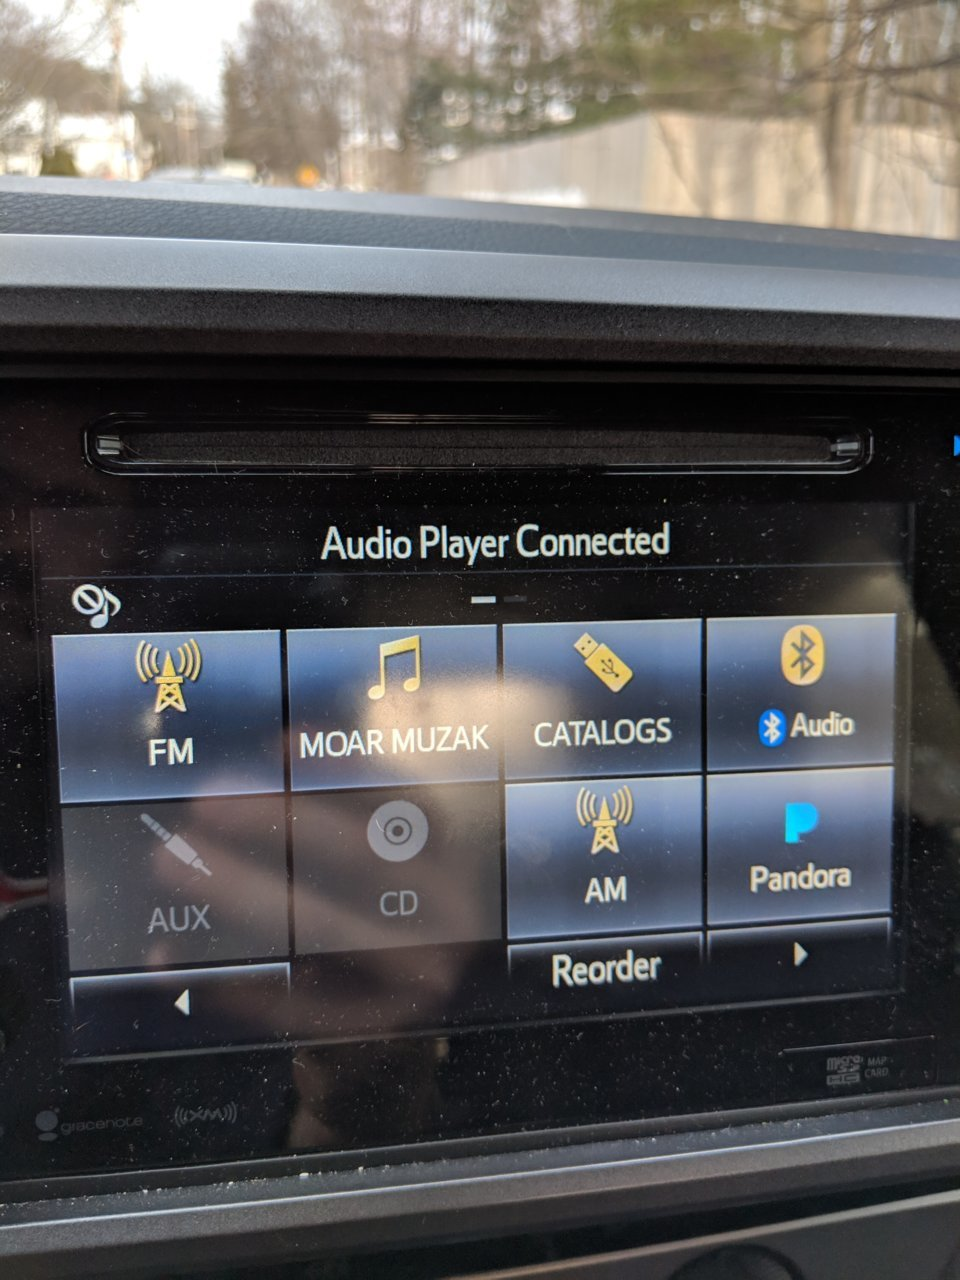 Replacing the head unit - 2018 TRD Sport - Kenwood DMX905S | Page 2